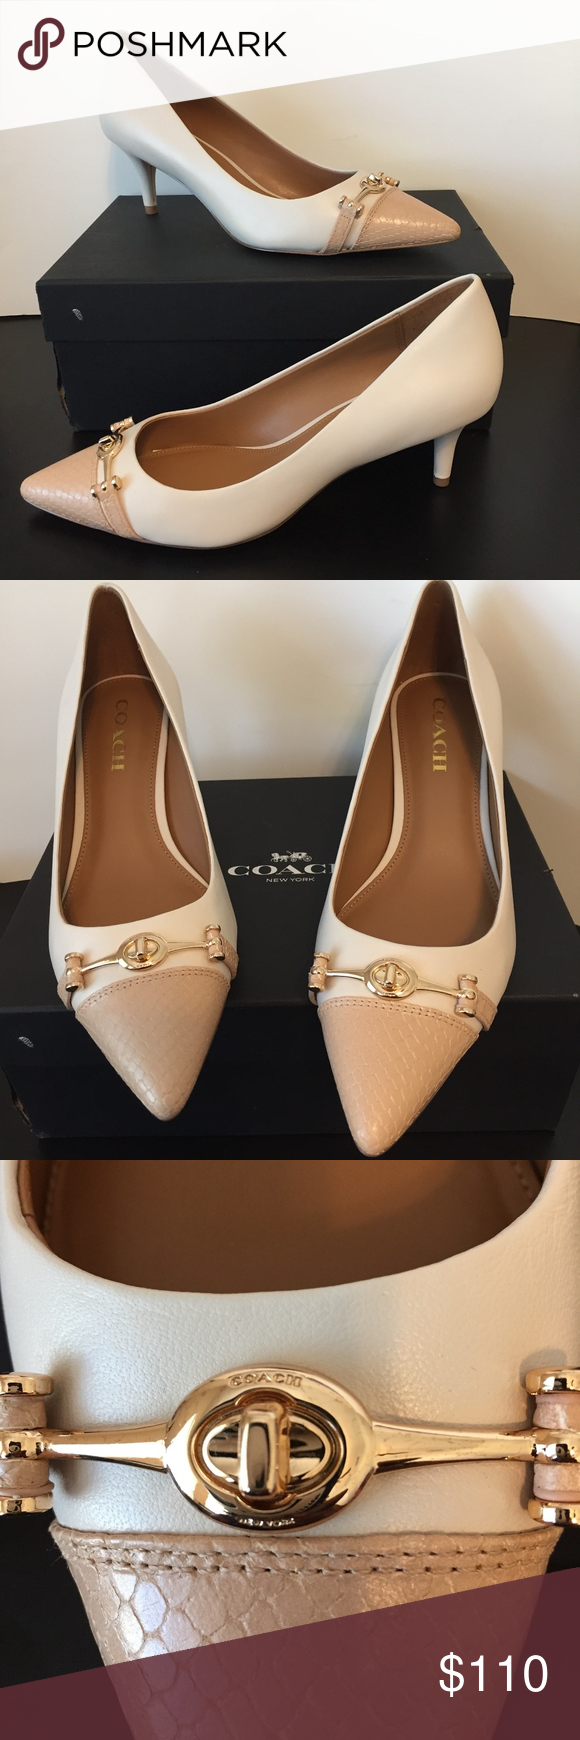 60d99359c128 COACH LAURI Pointed Toe Classic Pumps SIZE 9 M Authentic brand new in box  Coach Womens